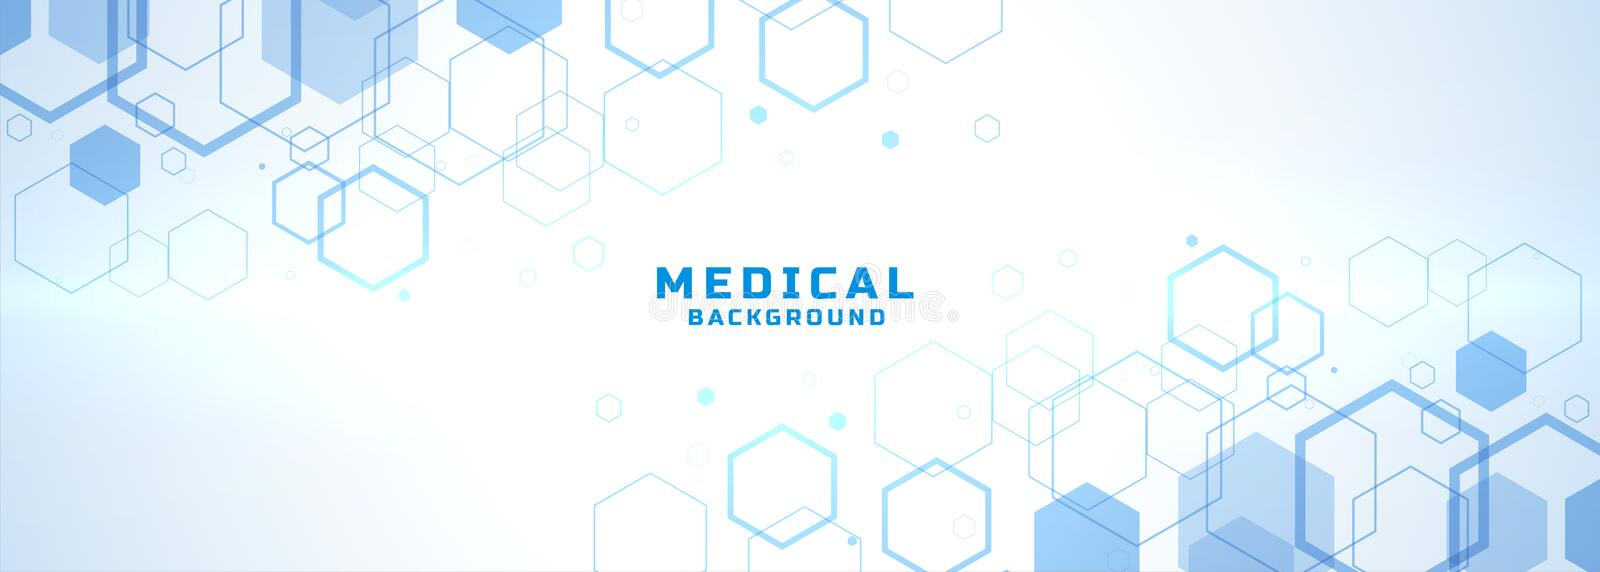 Abstract medical background with hexagonal structure shapes vector illustration